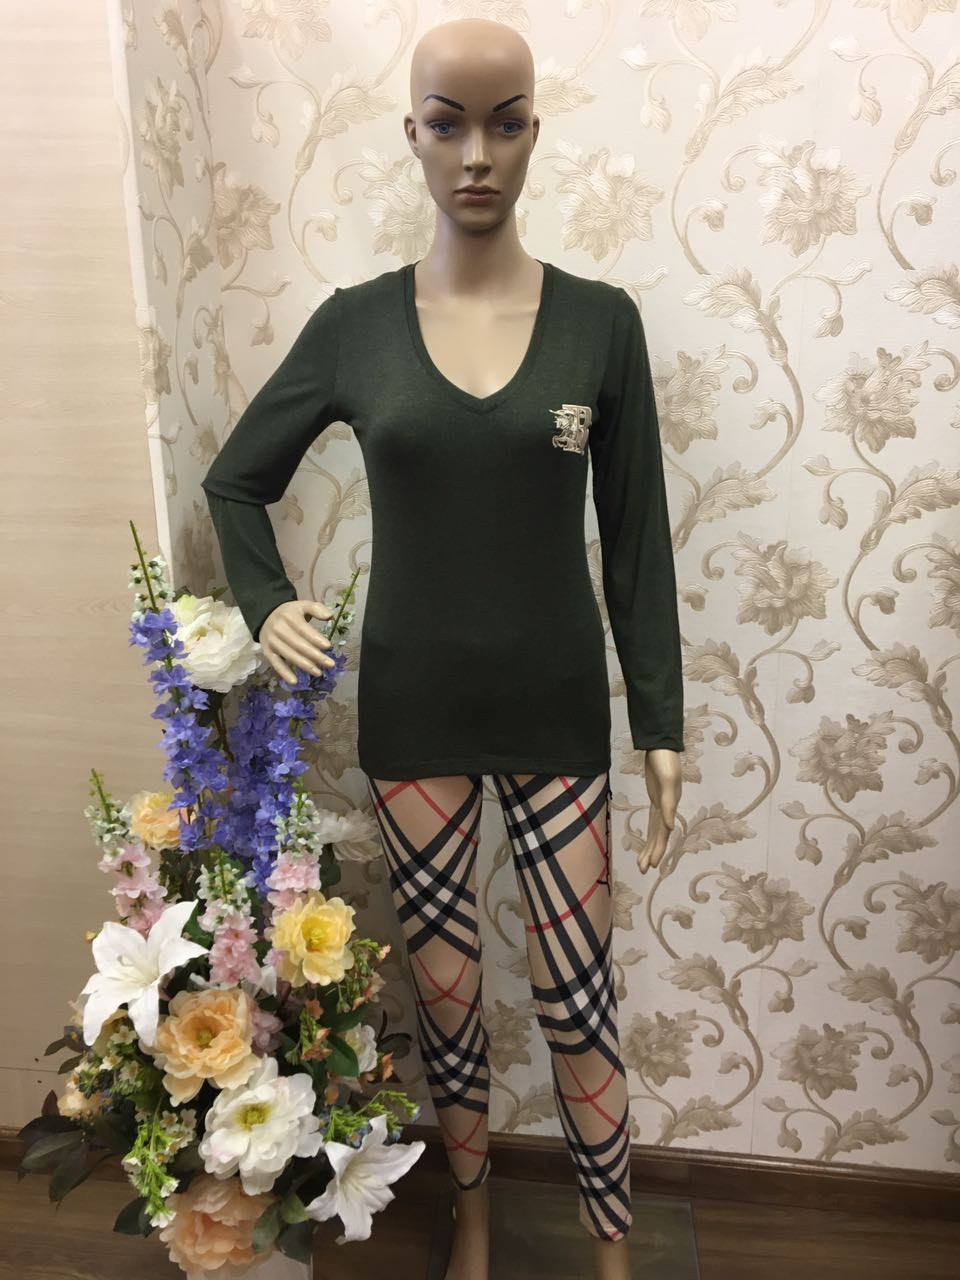 burberry--green-v-neck-pullover-with-embroidery